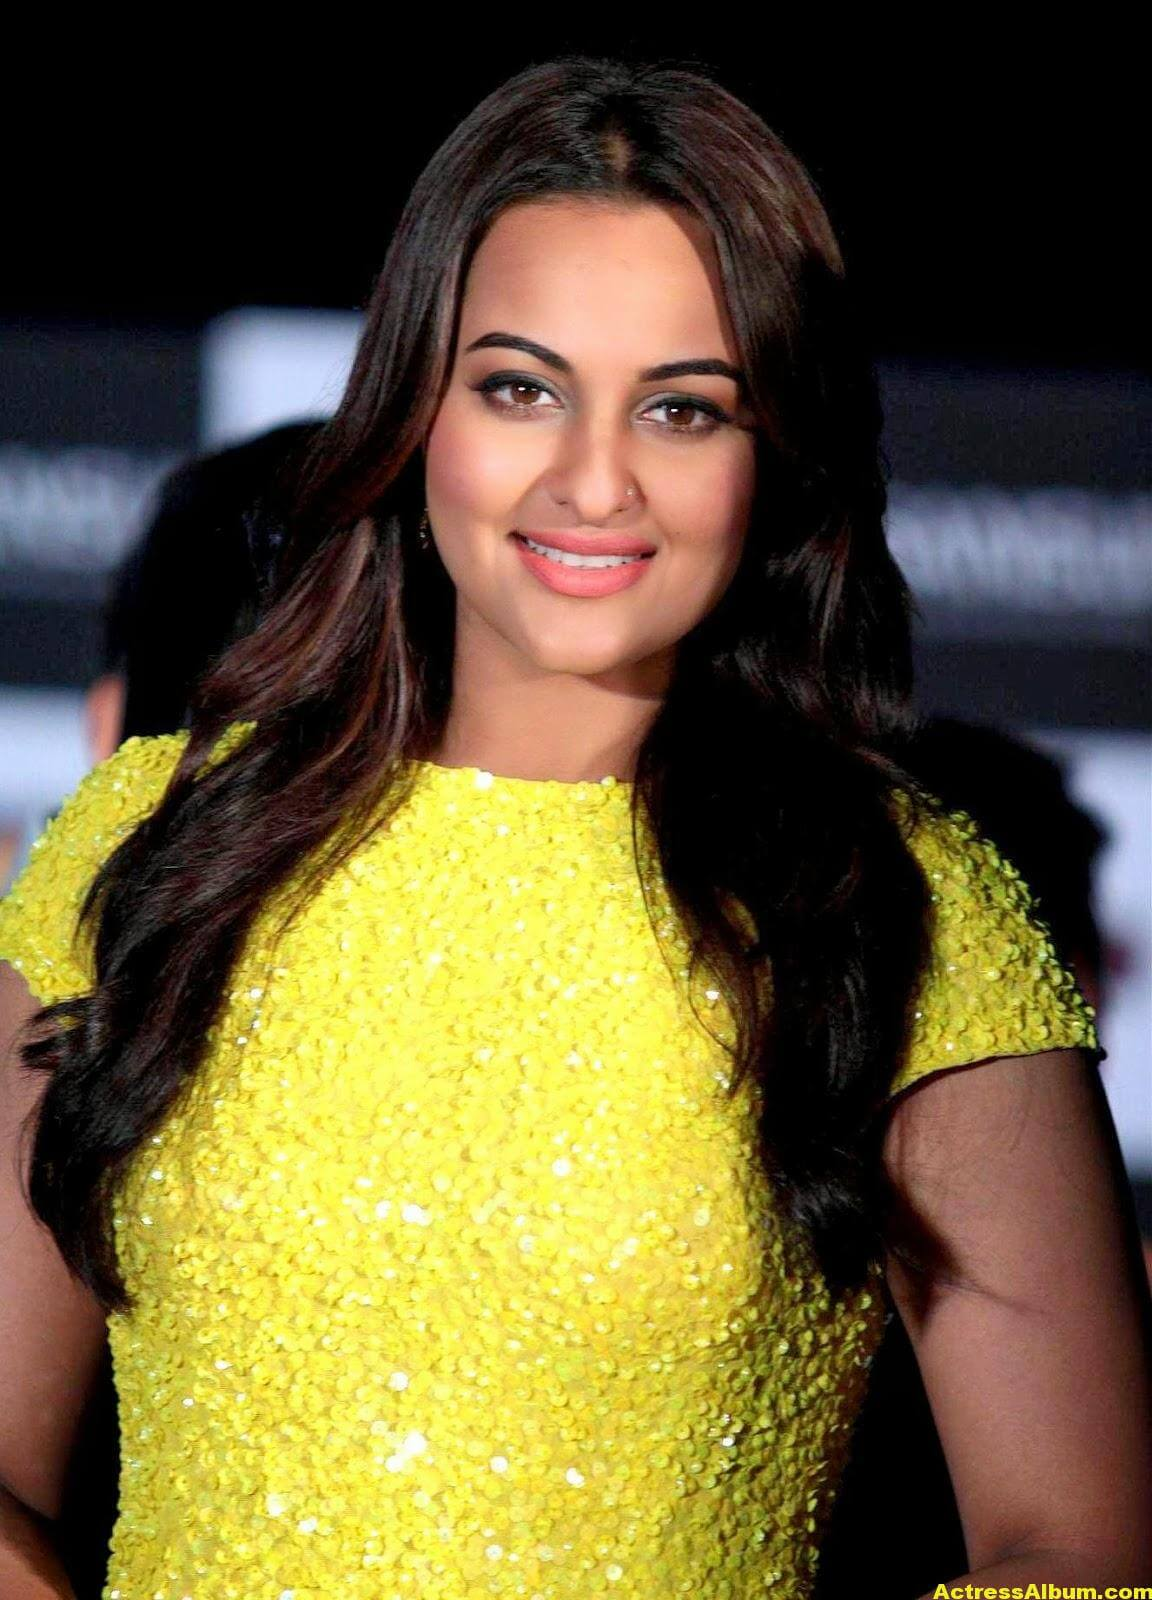 Sonakshi Sinha Spicy Stills In Yellow Dress 2